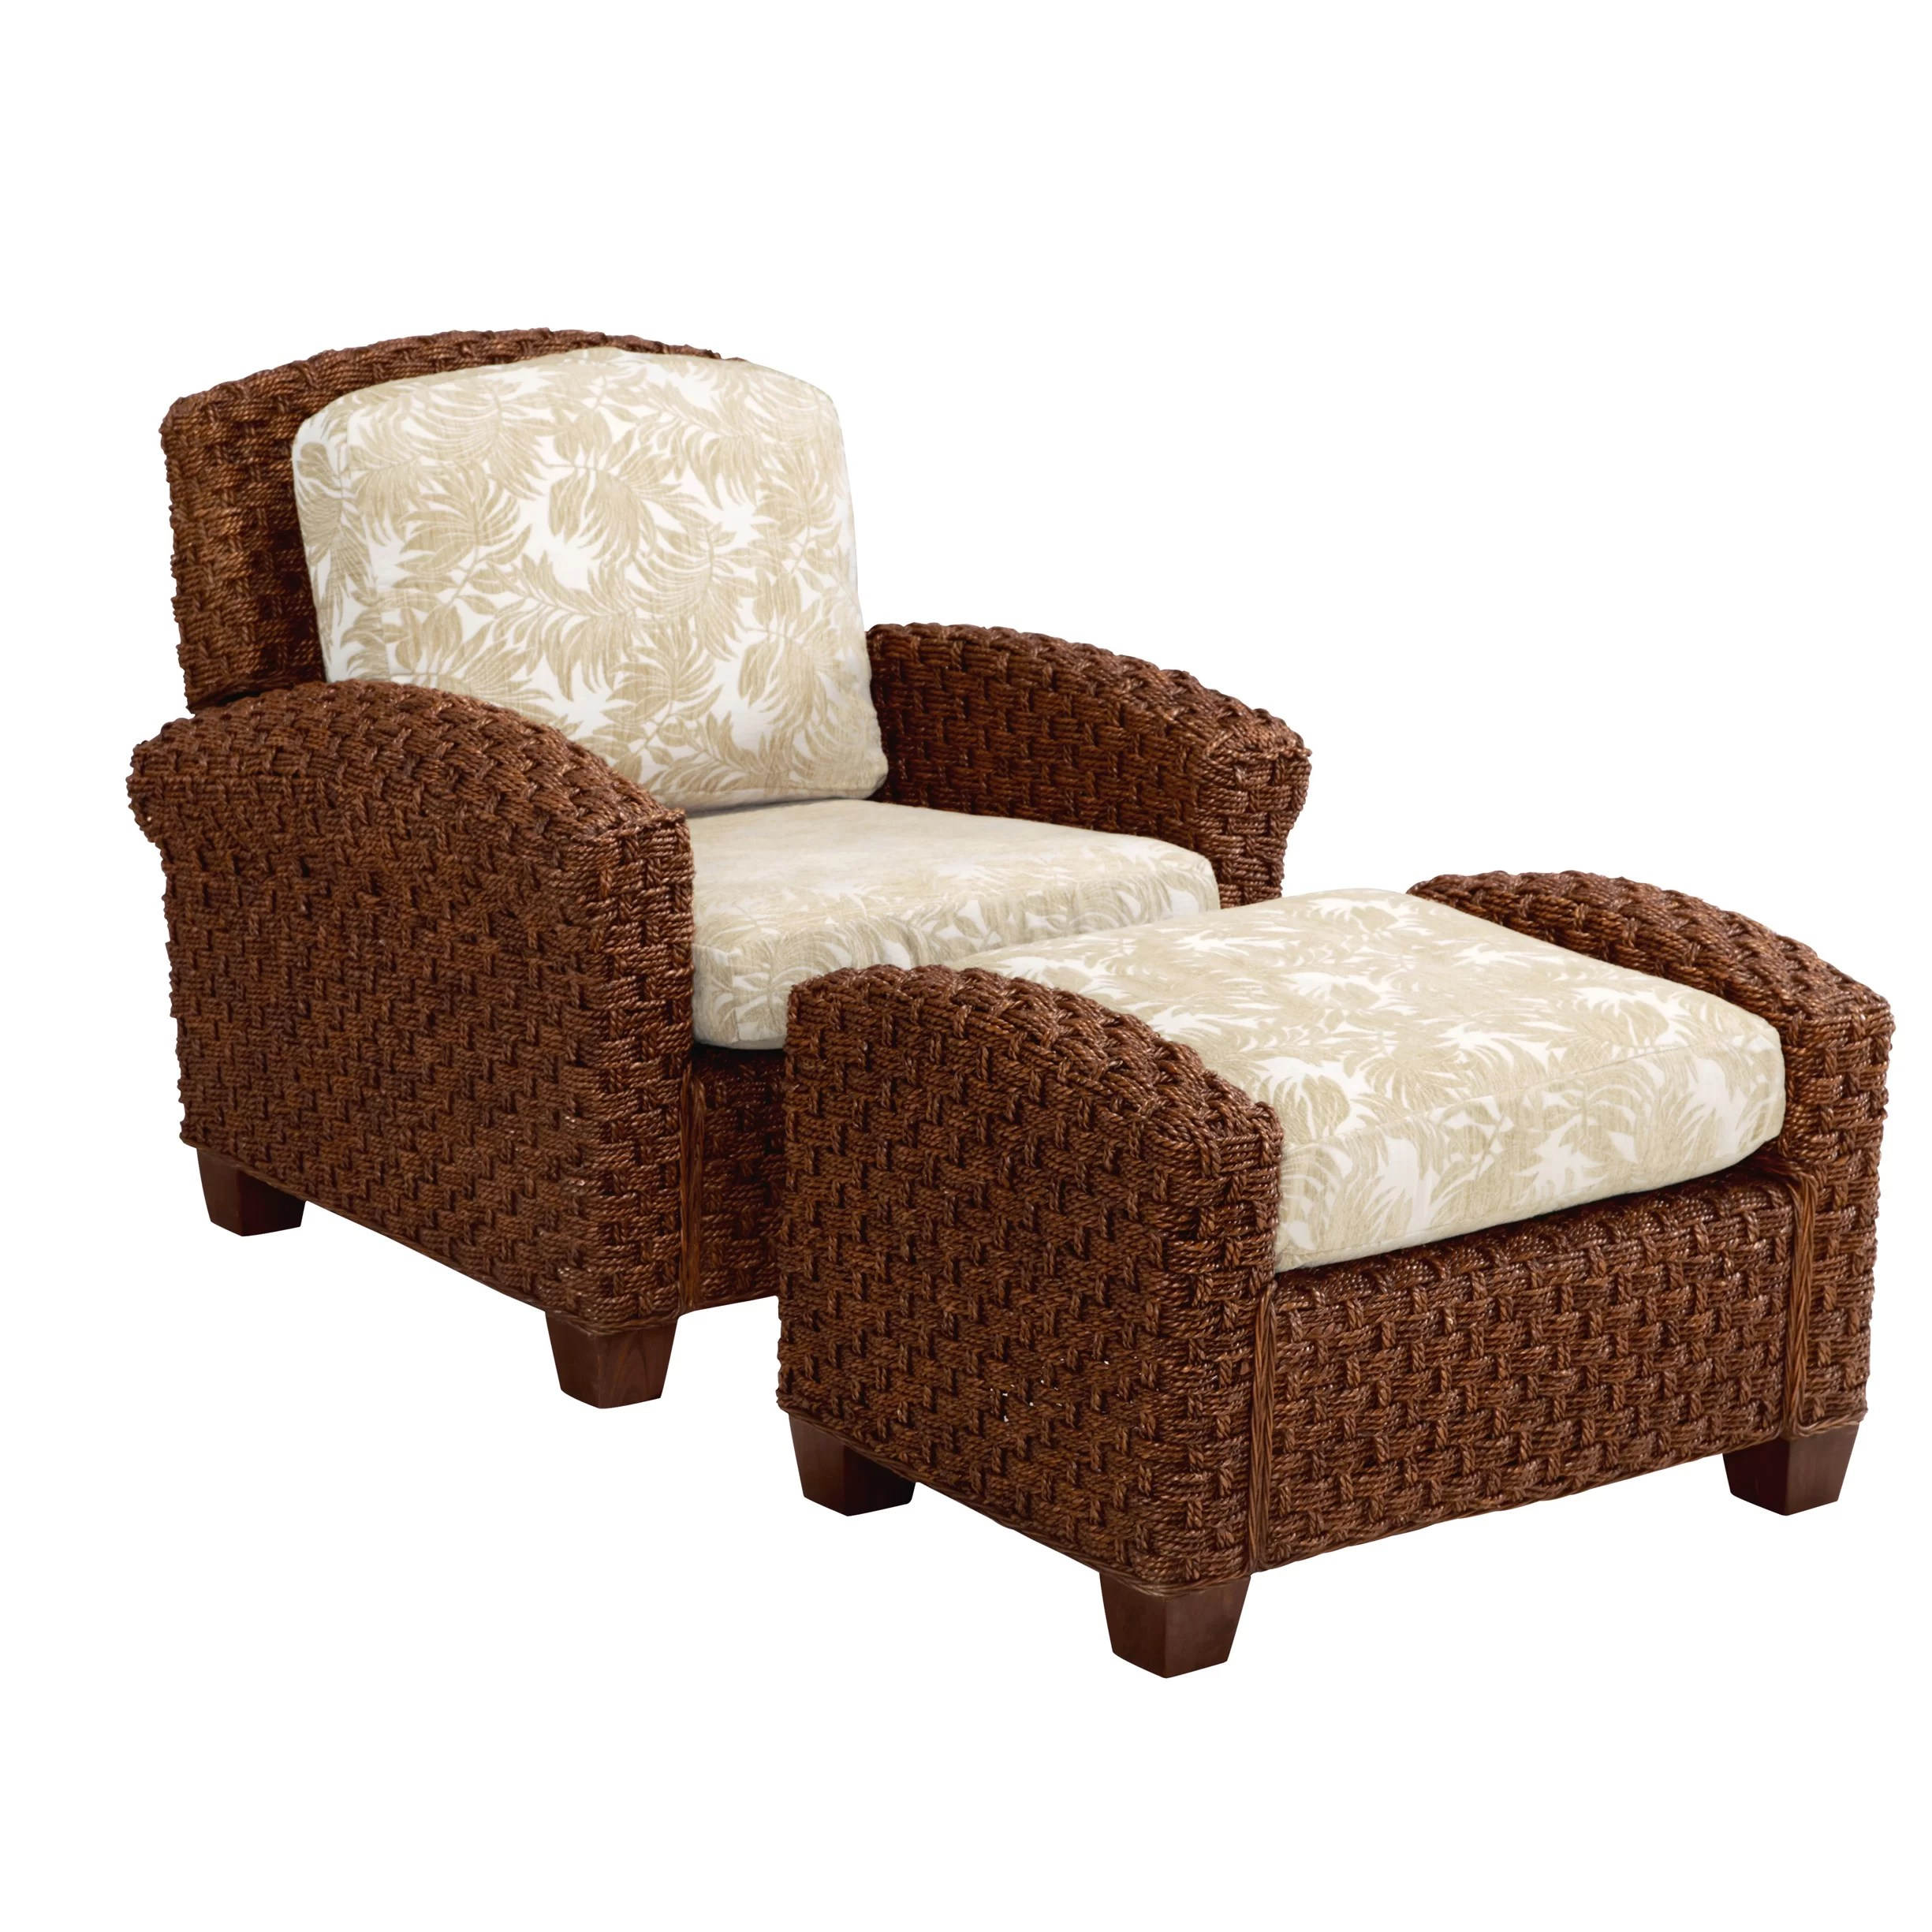 Cabana Chair Home Styles Cabana Banana Ii Ottoman And Reviews Wayfair